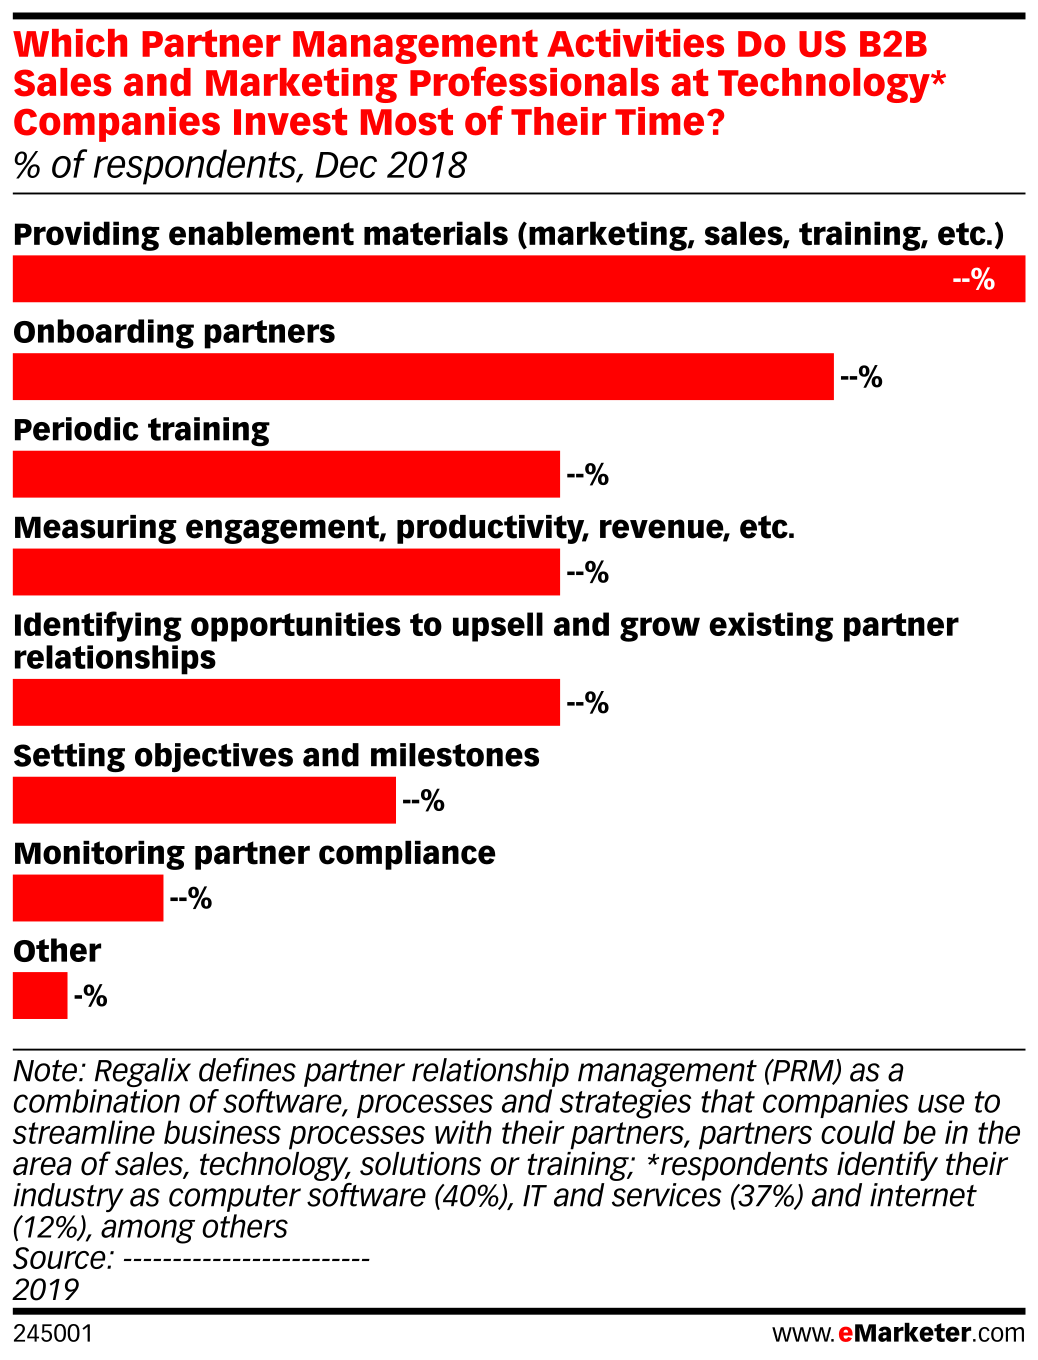 Which Partner Management Activities Do US B2B Sales and Marketing Professionals at Technology* Companies Invest Most of Their Time? (% of respondents, Dec 2018)